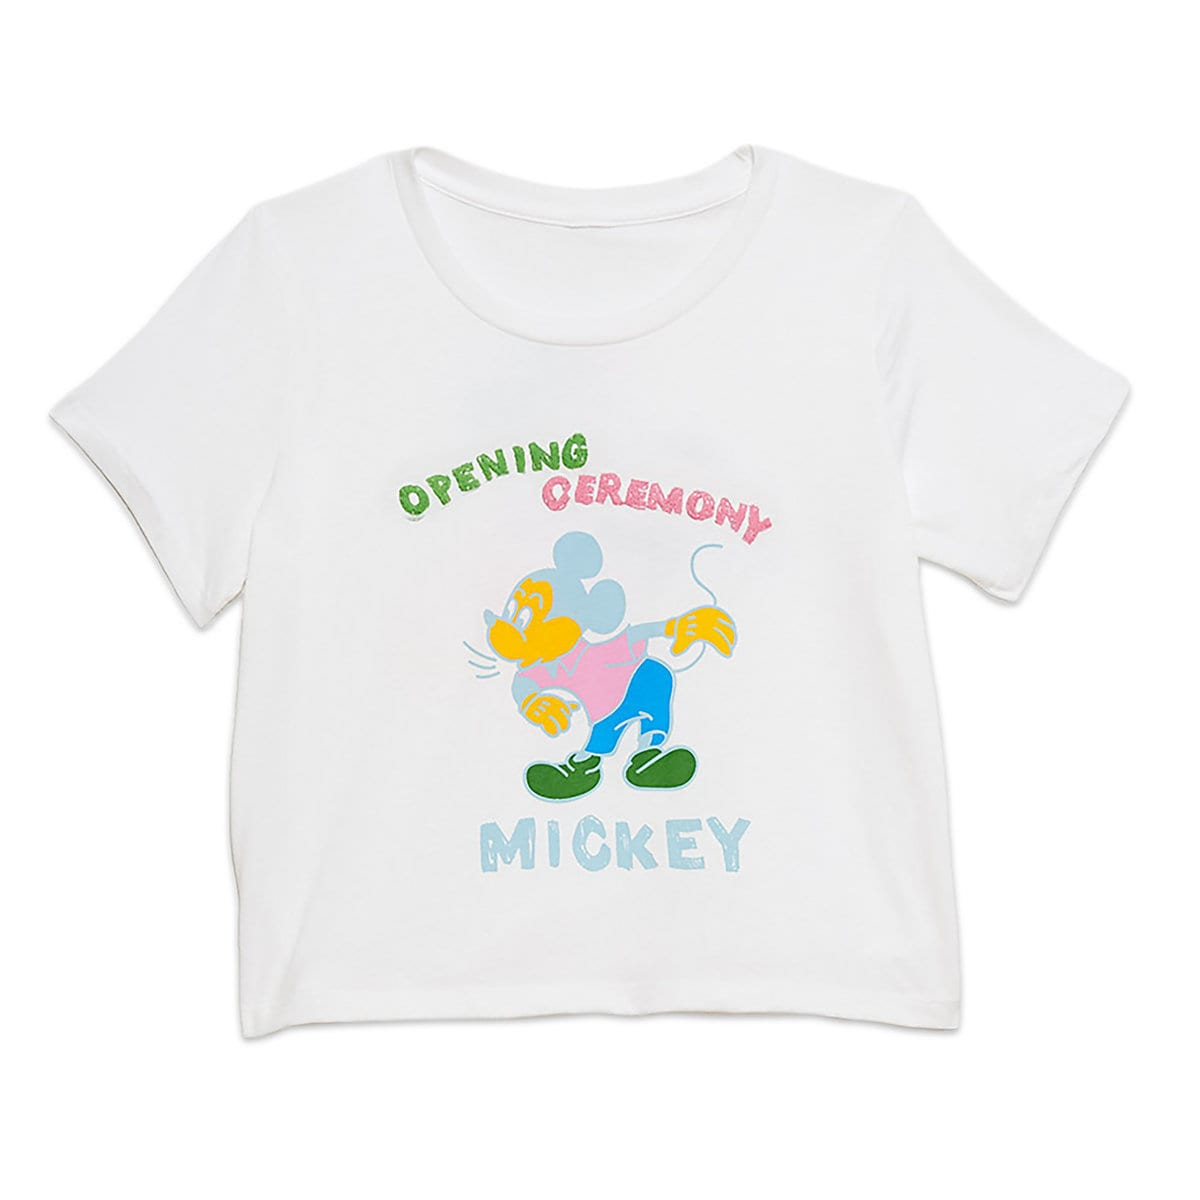 2f739749c14 Product Image of Mickey Mouse Cropped T-Shirt for Women by Opening Ceremony  # 1